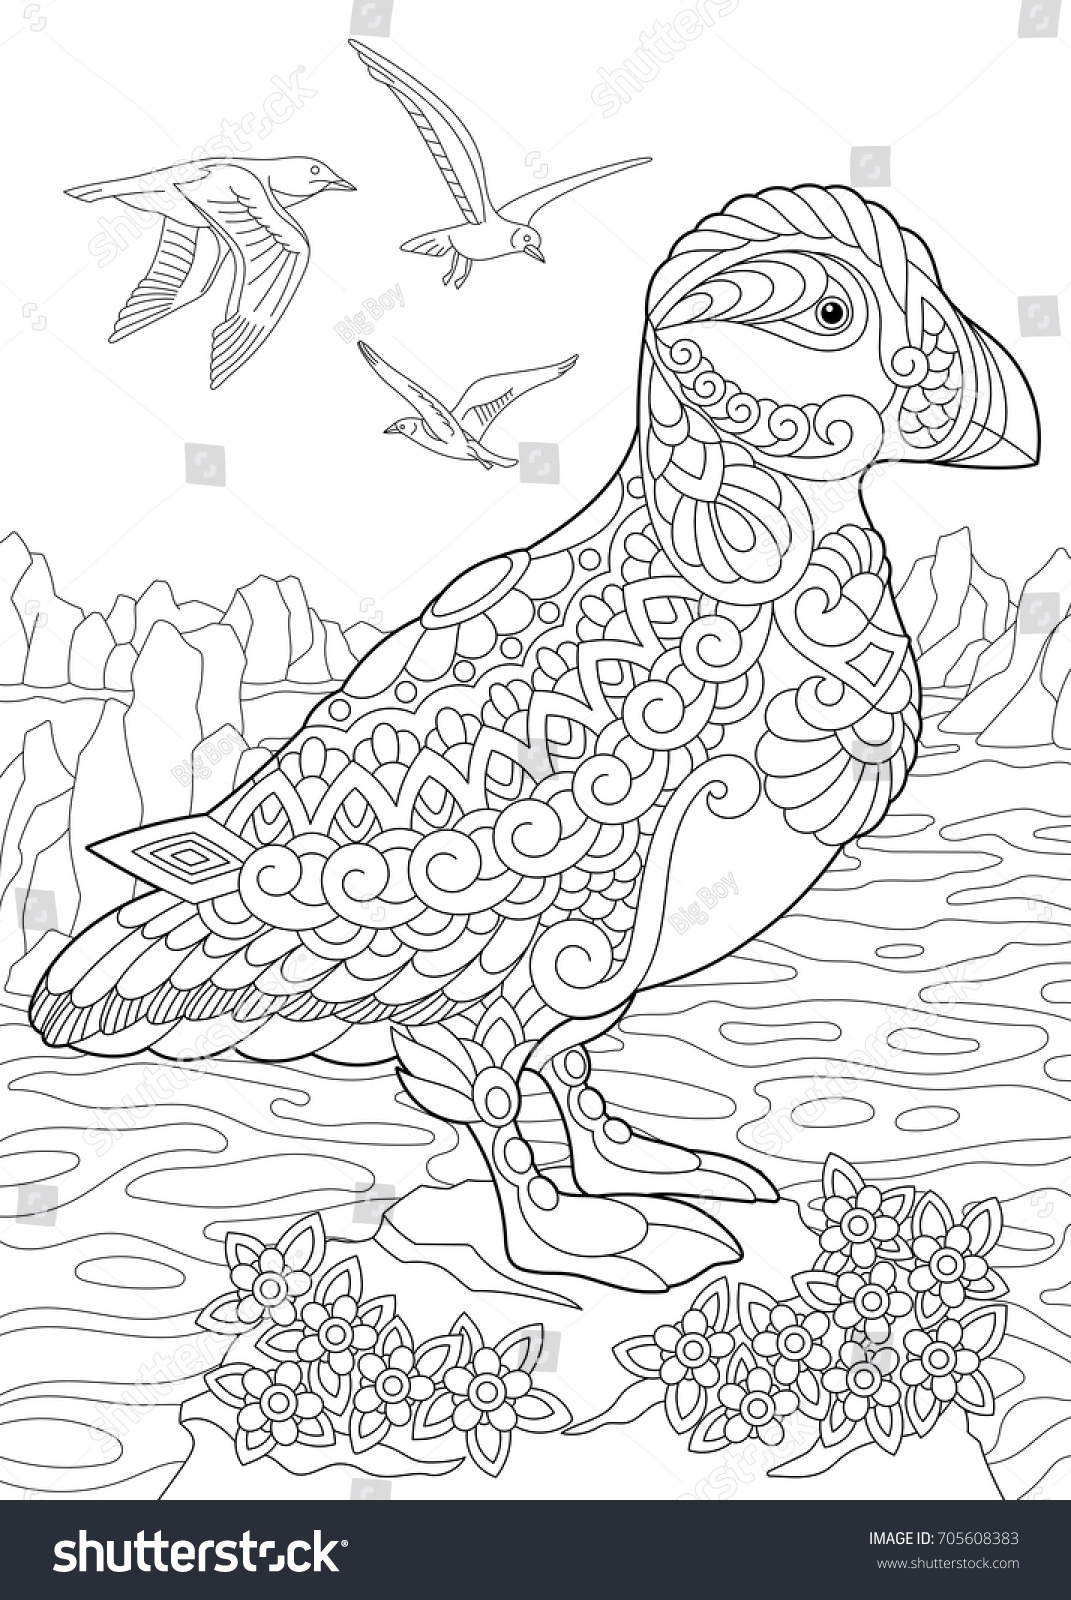 coloring page puffin holenesting auk seabird stock vector